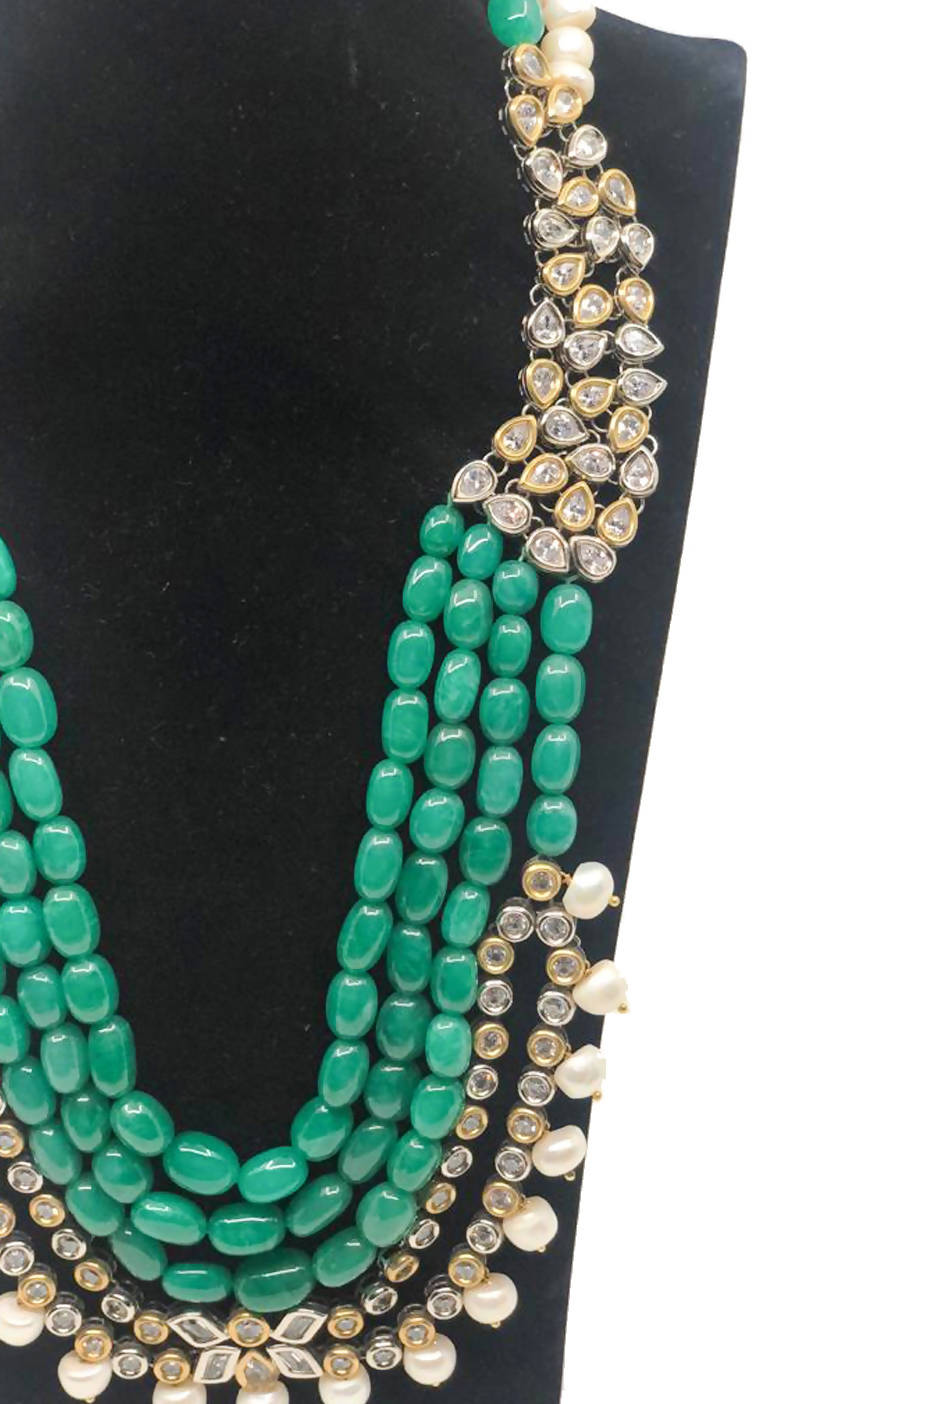 Green Necklace with Embellishment